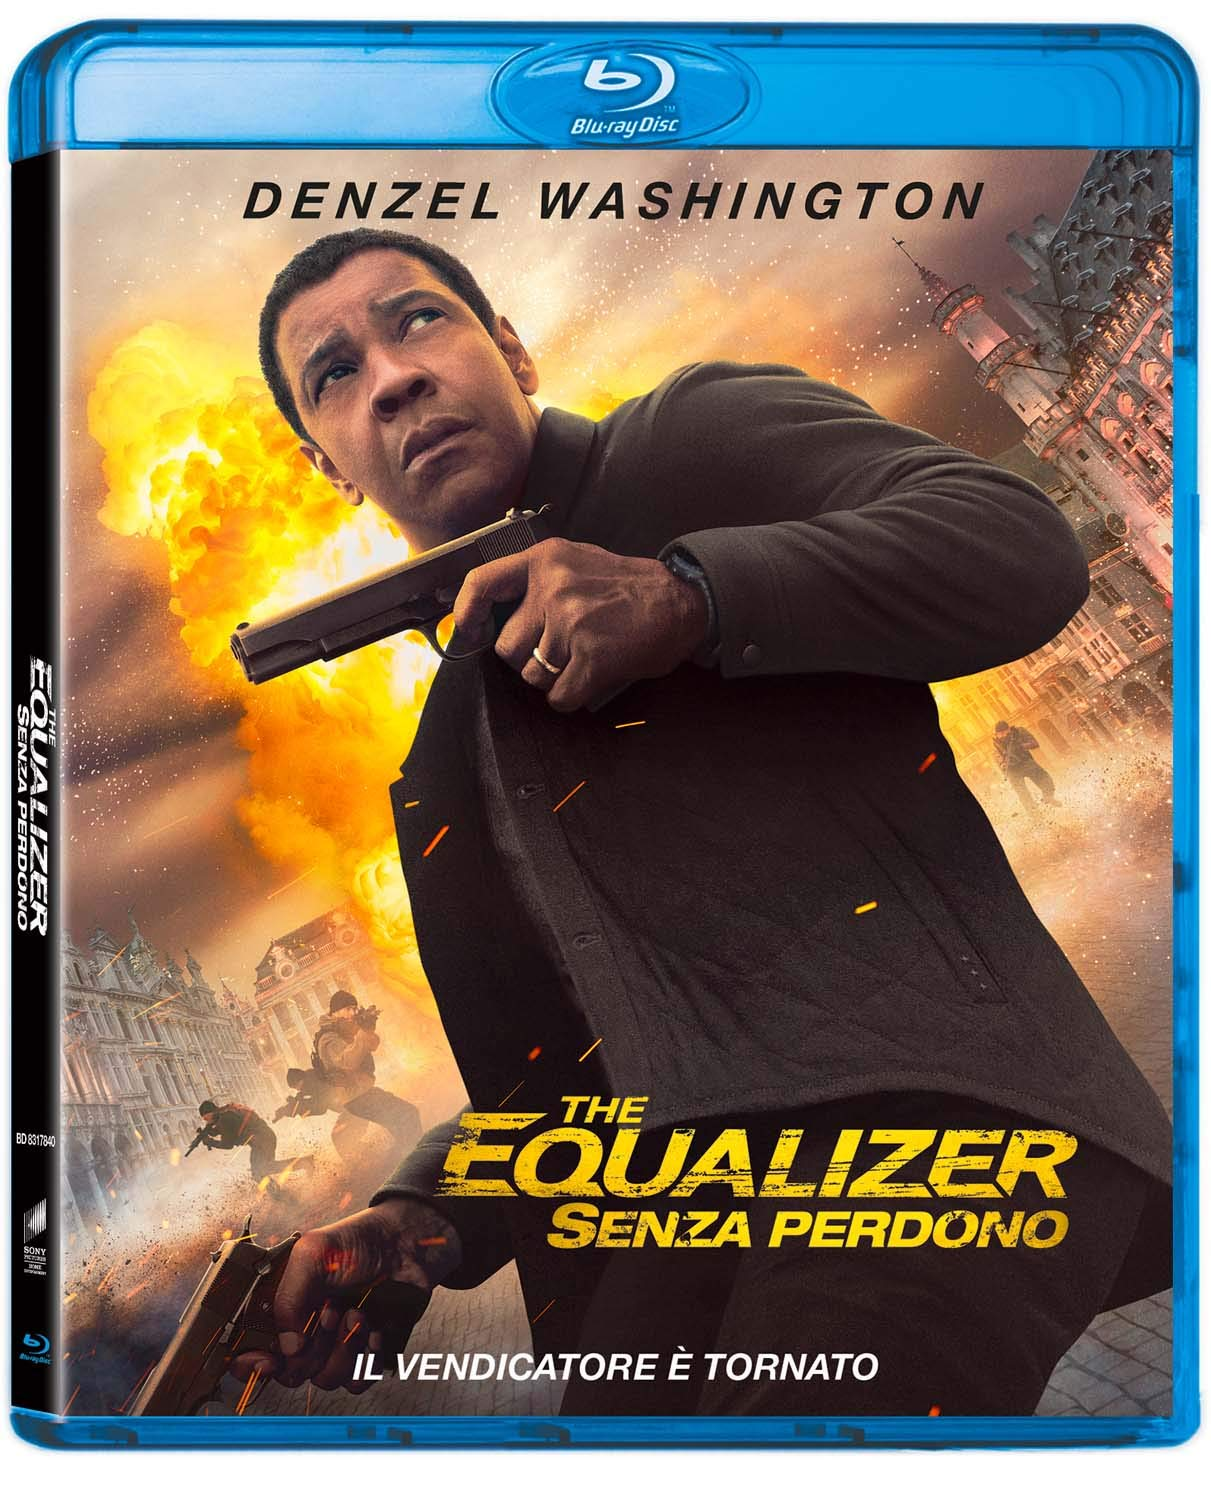 THE EQUALIZER 2 - SENZA PERDONO - BLU RAY